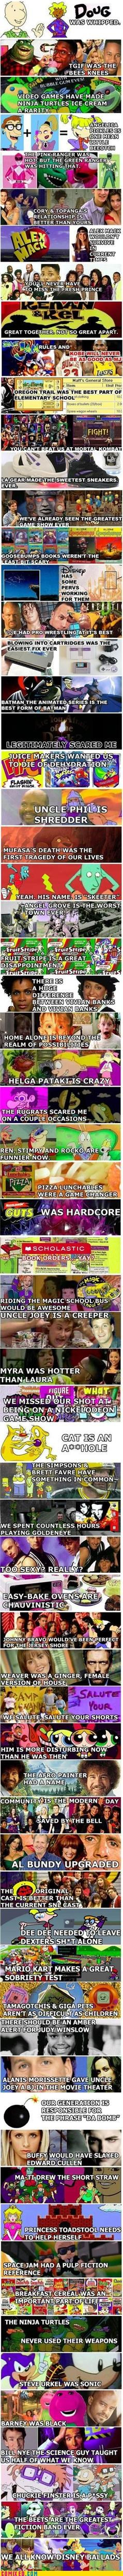 You Know You Grew Up in the 90s When...